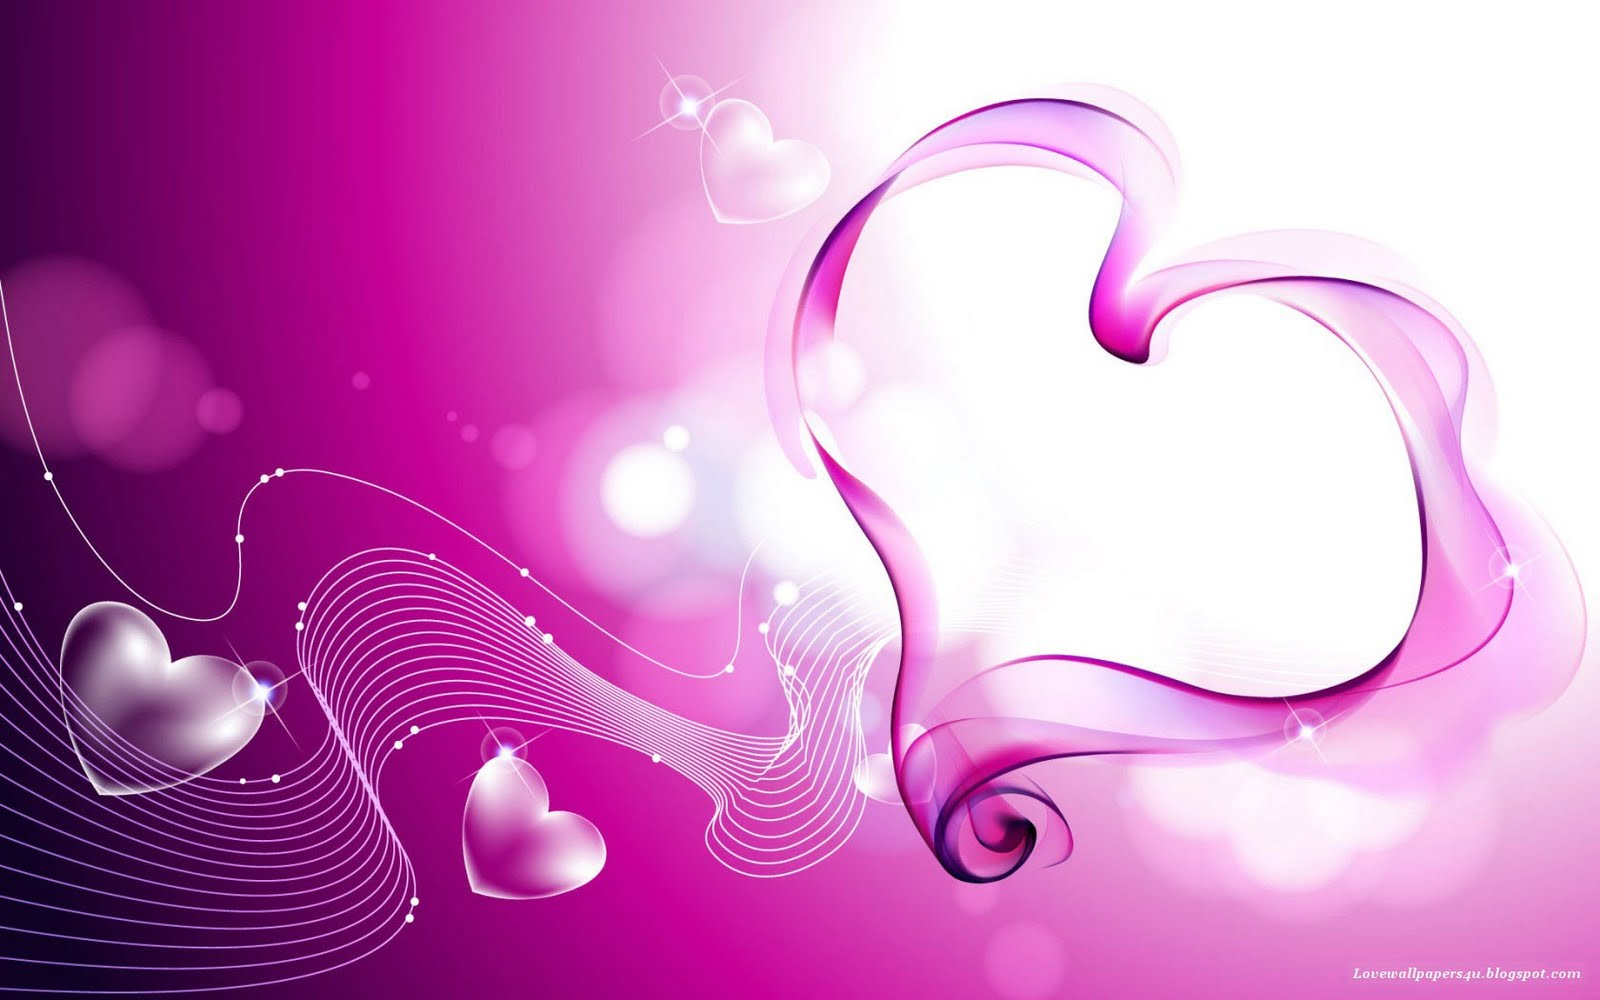 http://4.bp.blogspot.com/_vClfjdJc8Jk/TUBaGBdNFnI/AAAAAAAAE-c/0vIh9T302k4/s1600/Love-wallpapers-romantic-Creative-crazy%20advertisements-jagodunya-funny-pictures-2011-jago-dunya-cute-babies-indian-wallpapers-global-beena-malik-pictures-funny-images-internet-news-tool-tips-05.jpg